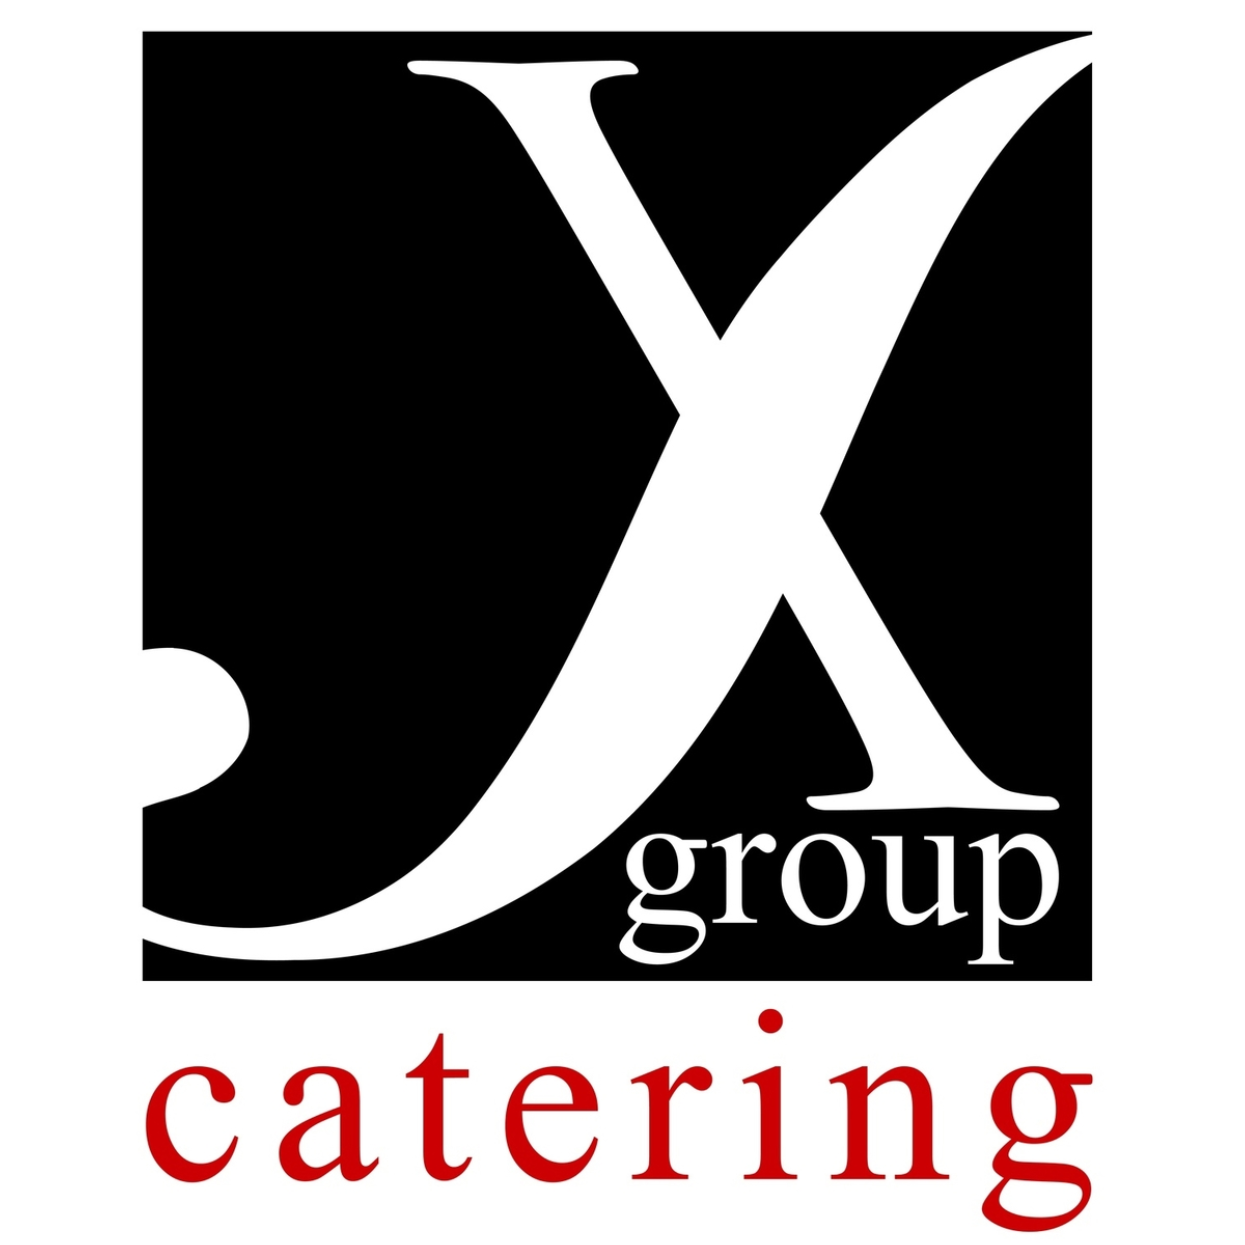 X Group Catering